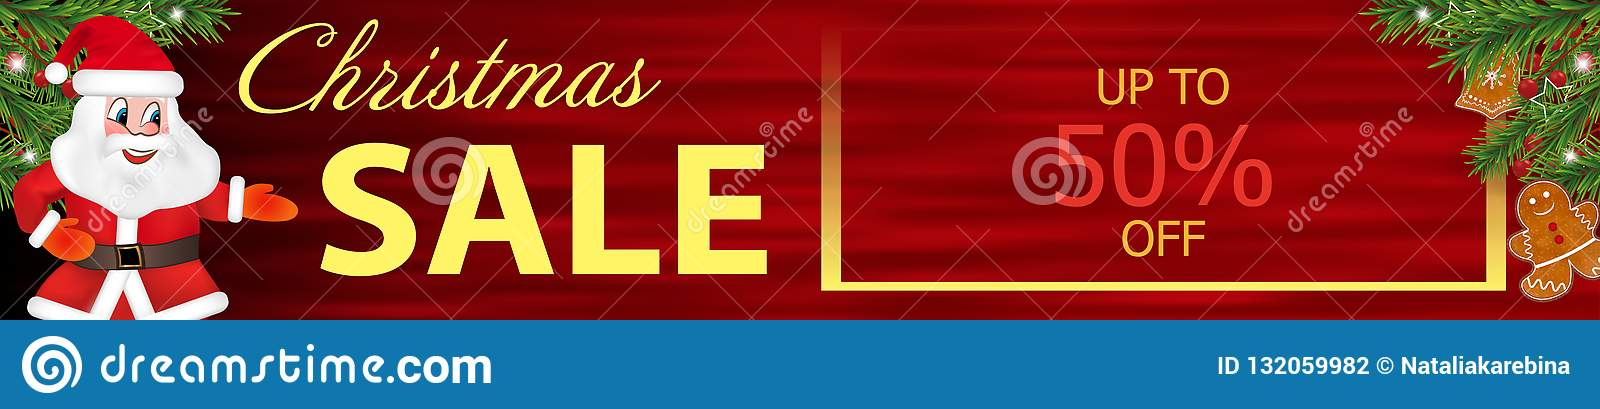 Red Banner Christmas Sale With Funny Santa Claus And Gingerbread